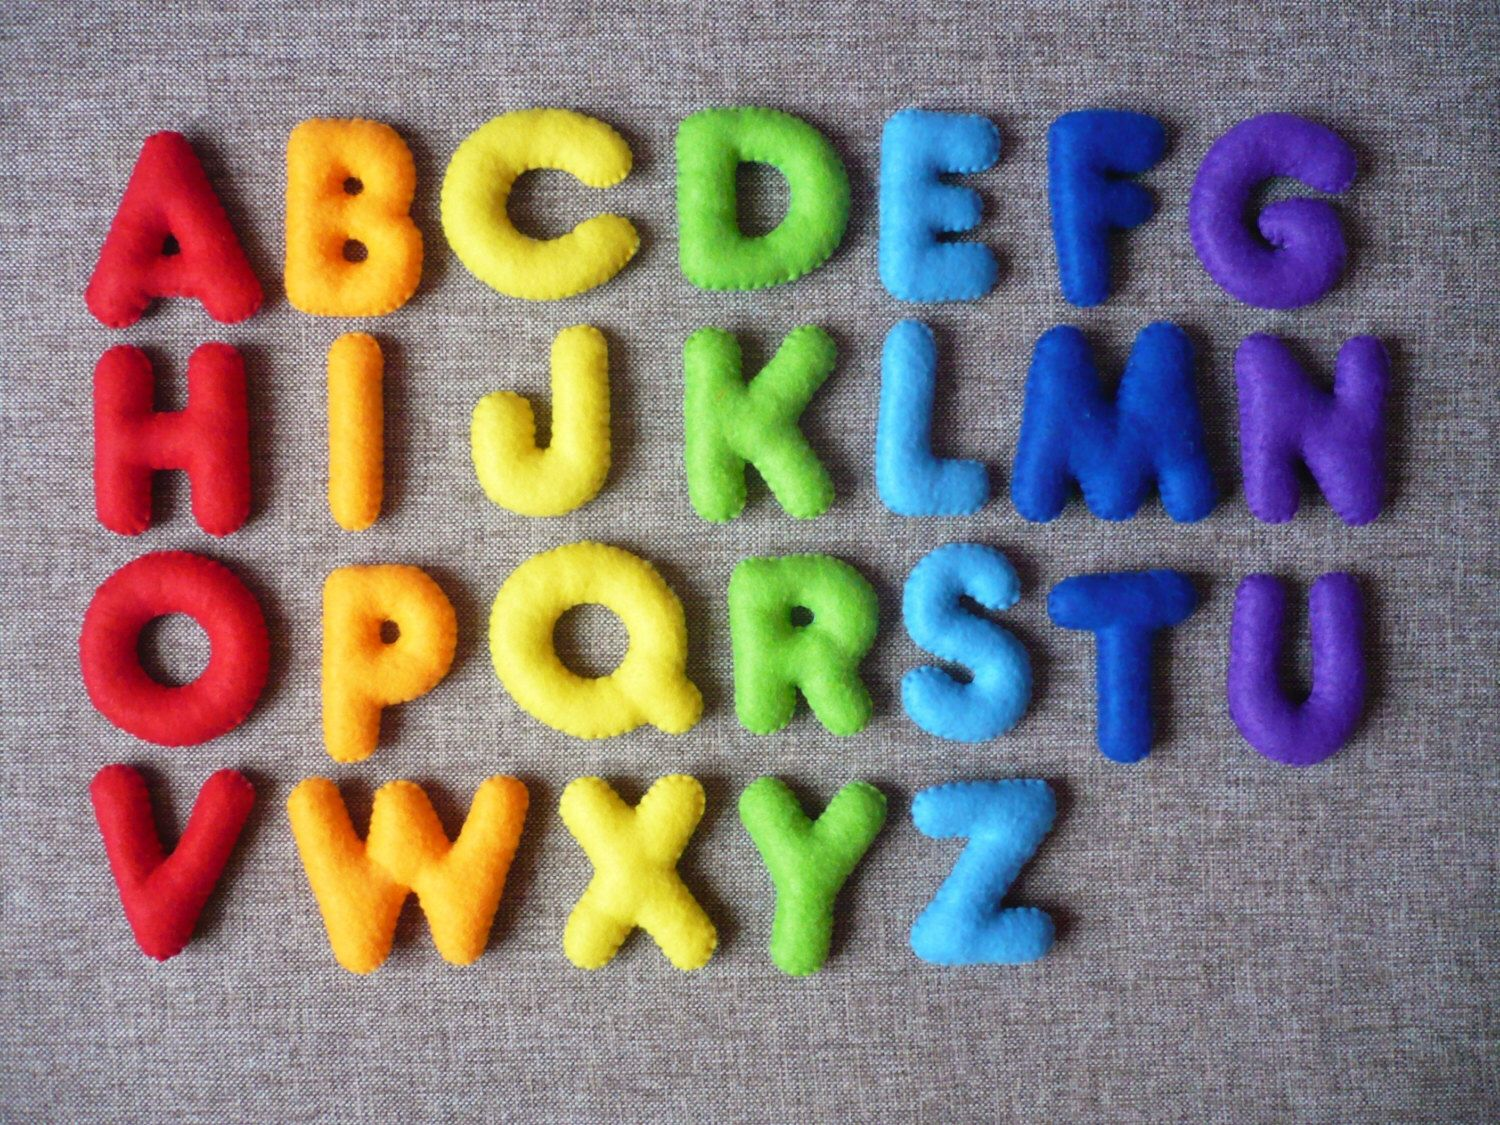 alphabet letters pattern 15 fabric applique pdf bеаutіful alphabet letters pattern 15 fabric applique pdf 247